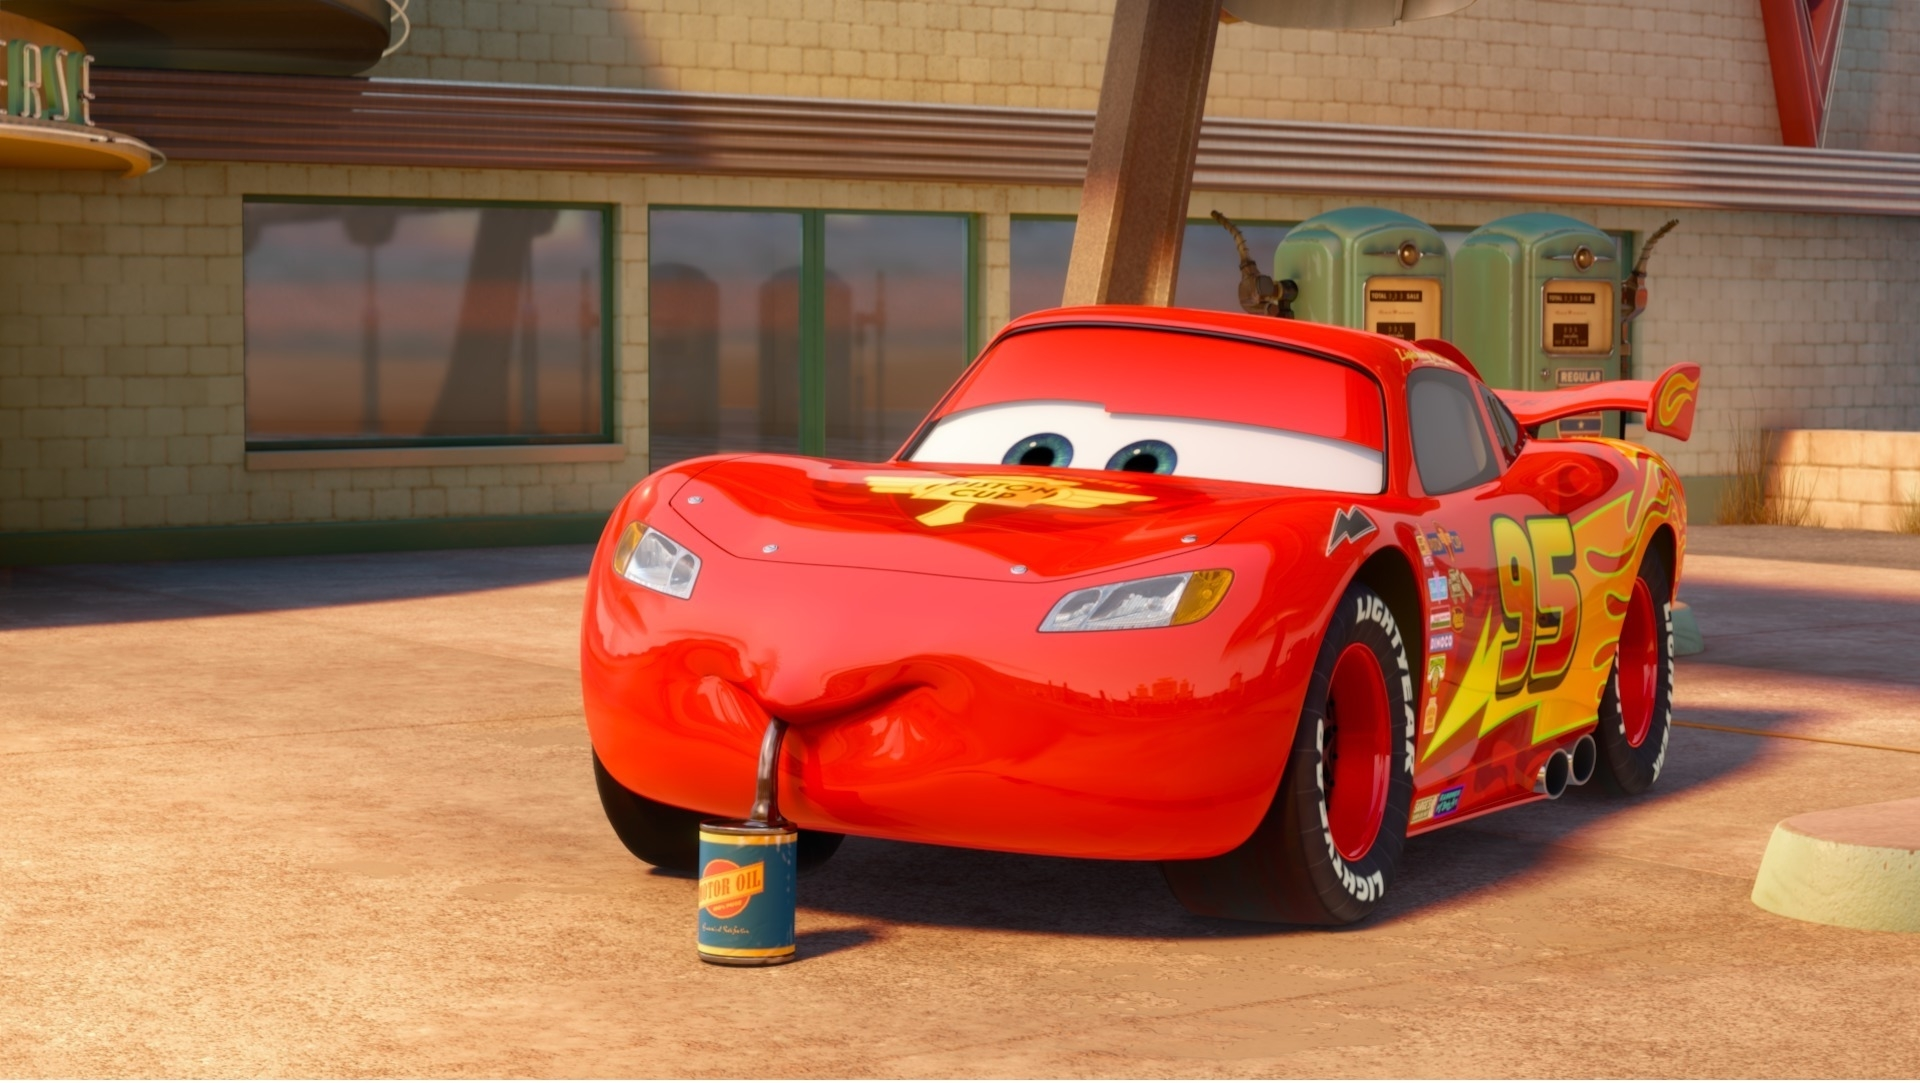 which paint job of lightning mcqueen do 당신 like best